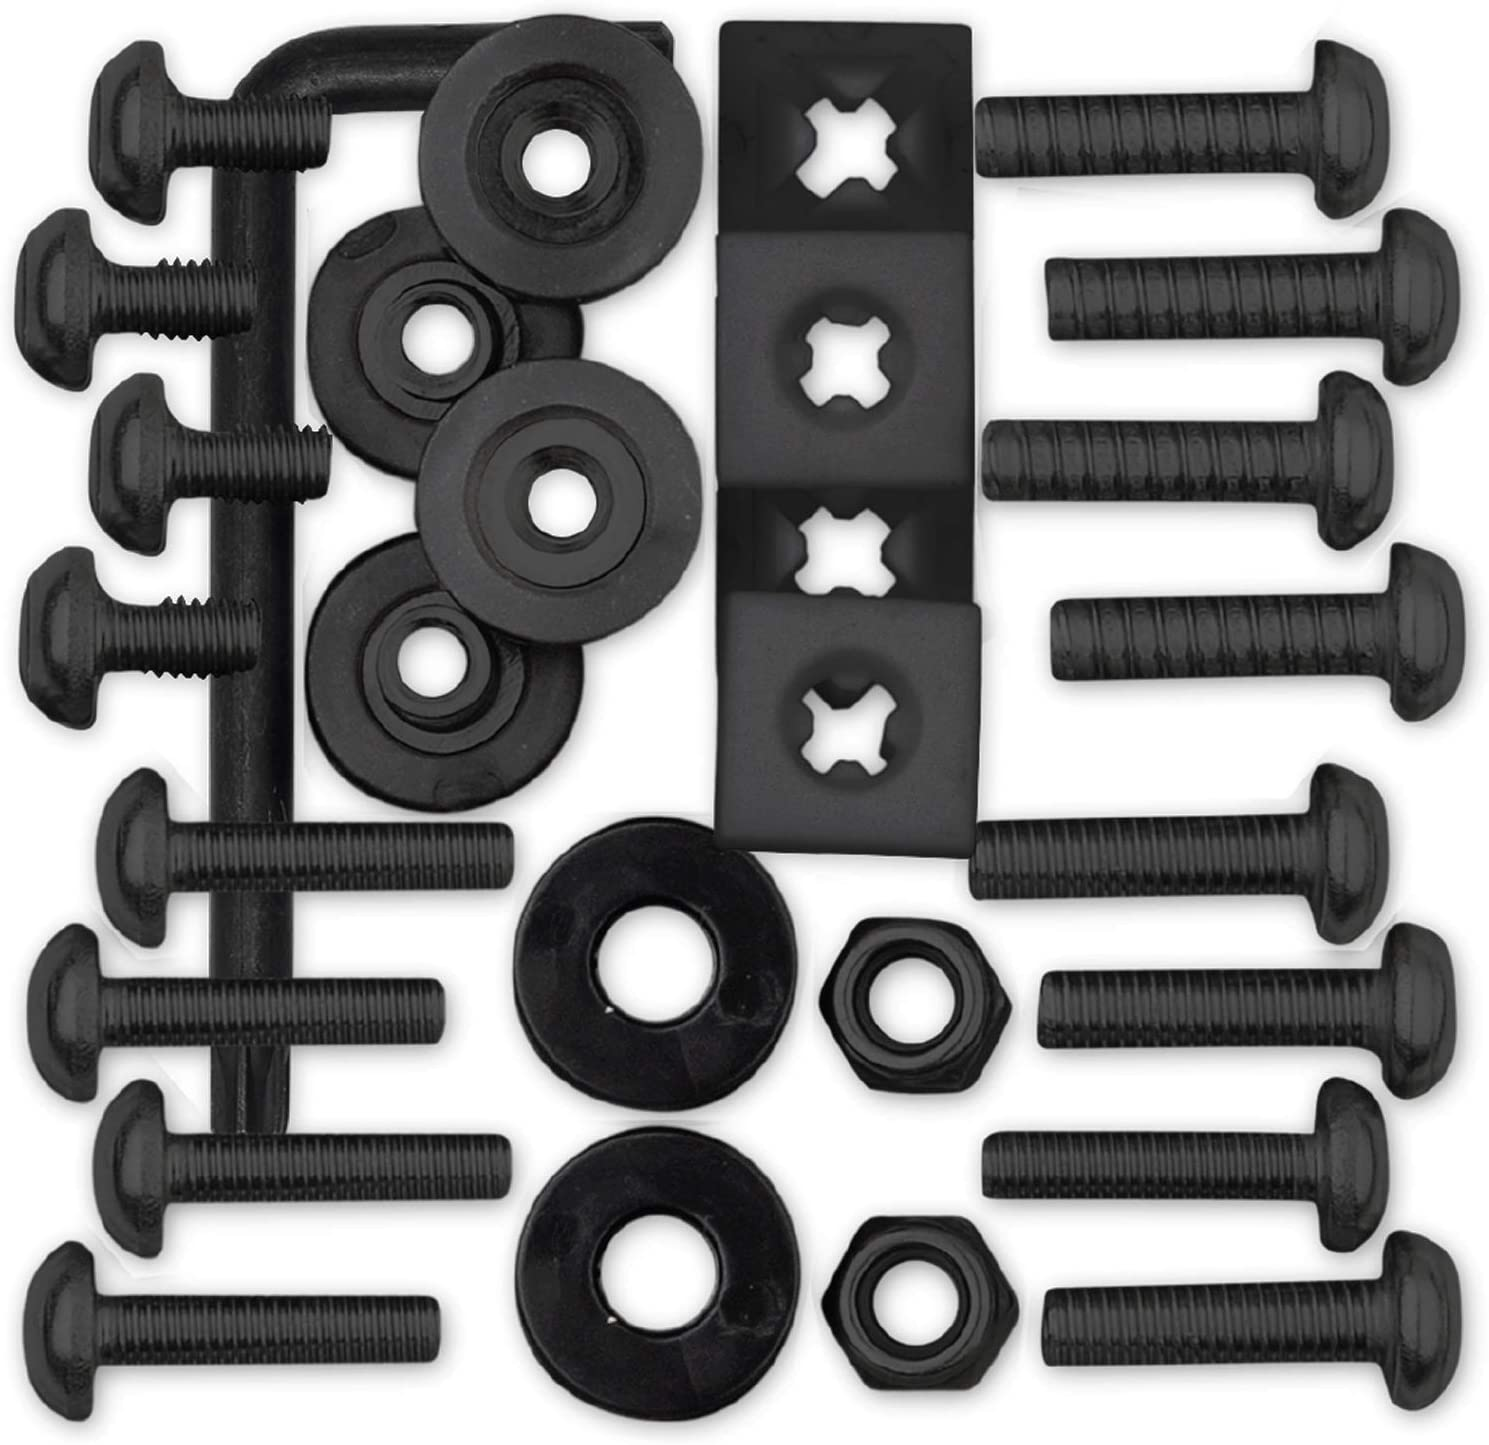 Cruiser Accessories 81550 License Plate Locking Fasteners Ultimate Kit-Stainless Black Star Pin